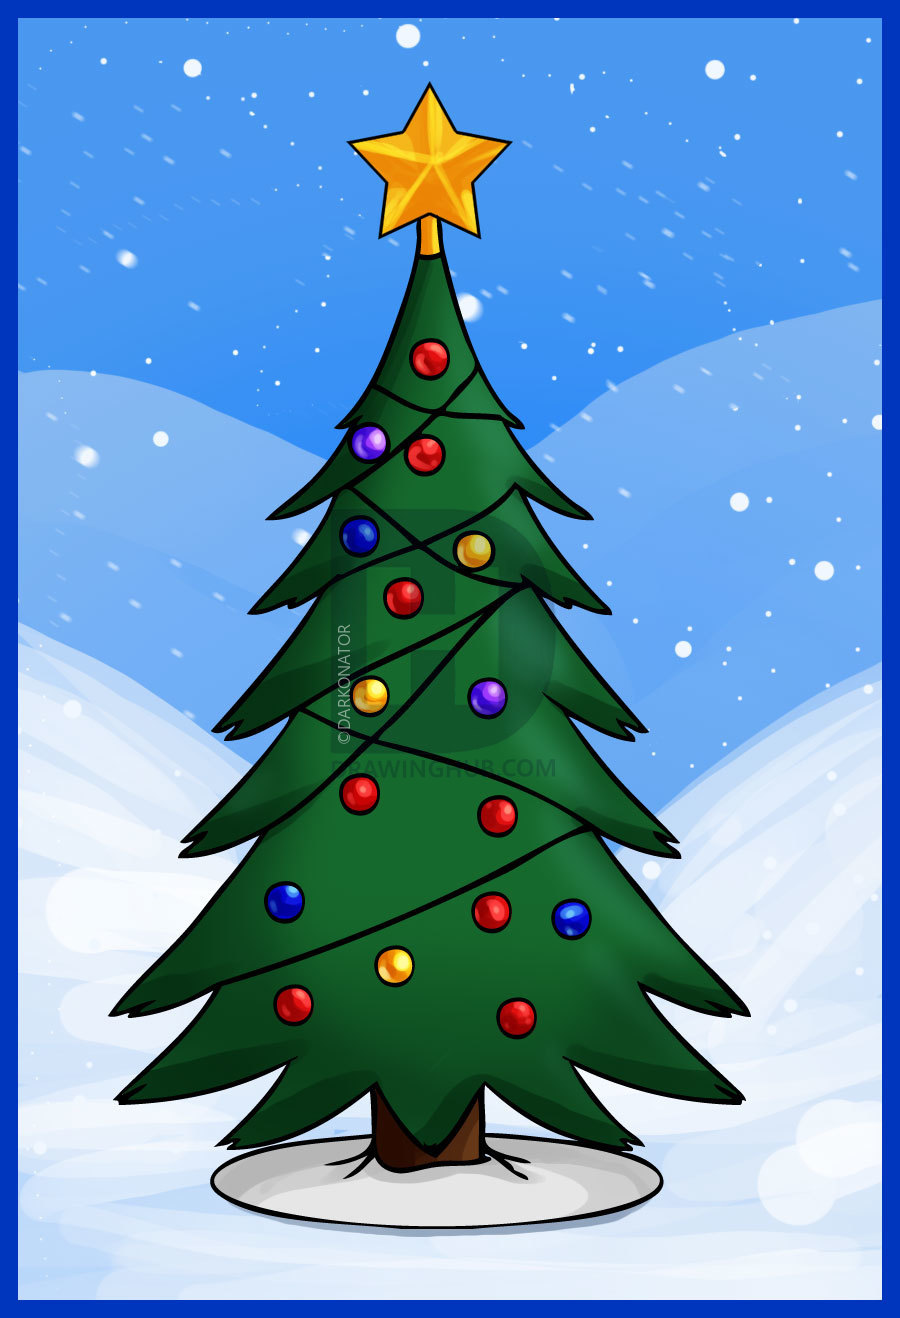 How To Draw A Simple Christmas Tree Step By Step Drawing Guide By Darkonator Christmas Tree Drawing Christmas Tree Drawing Easy Christmas Tree Painting